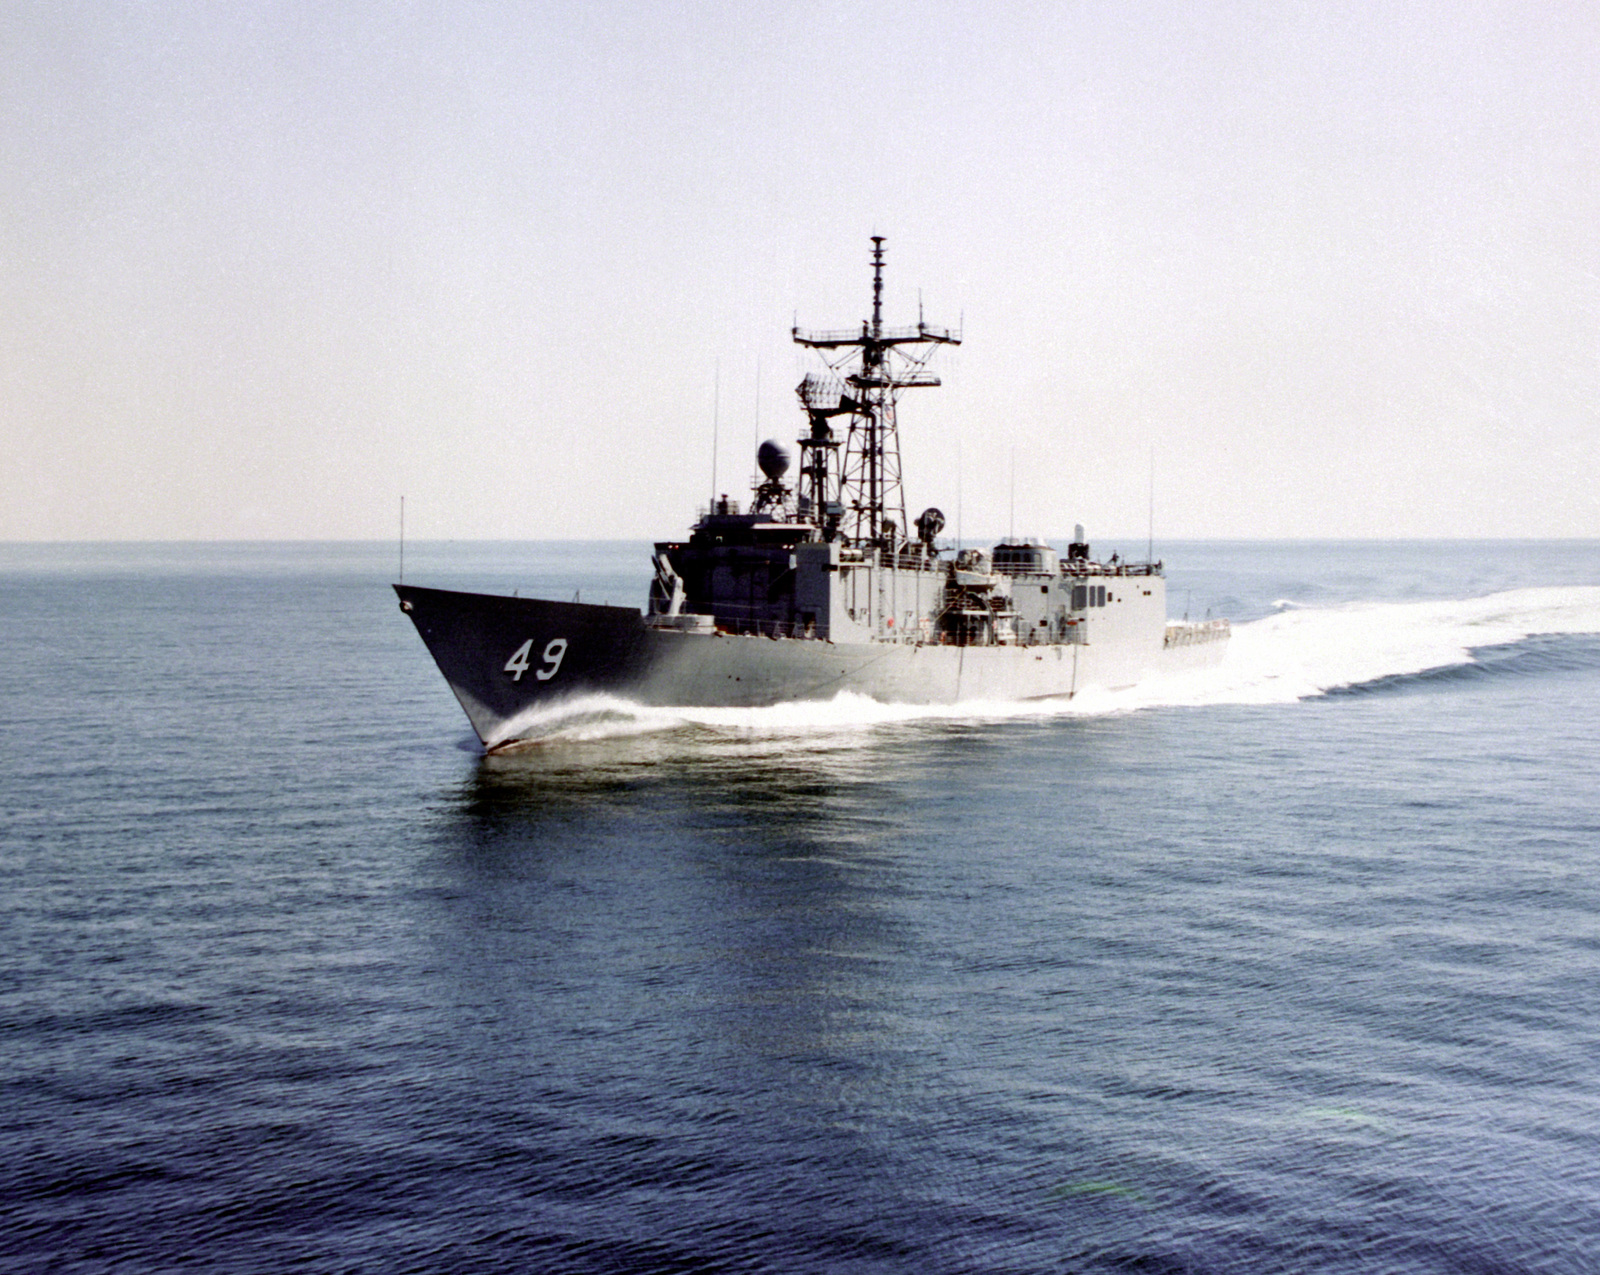 A port bow view of the guided missile frigate ROBERT G. BRADLEY (FFG-49) underway during sea trials